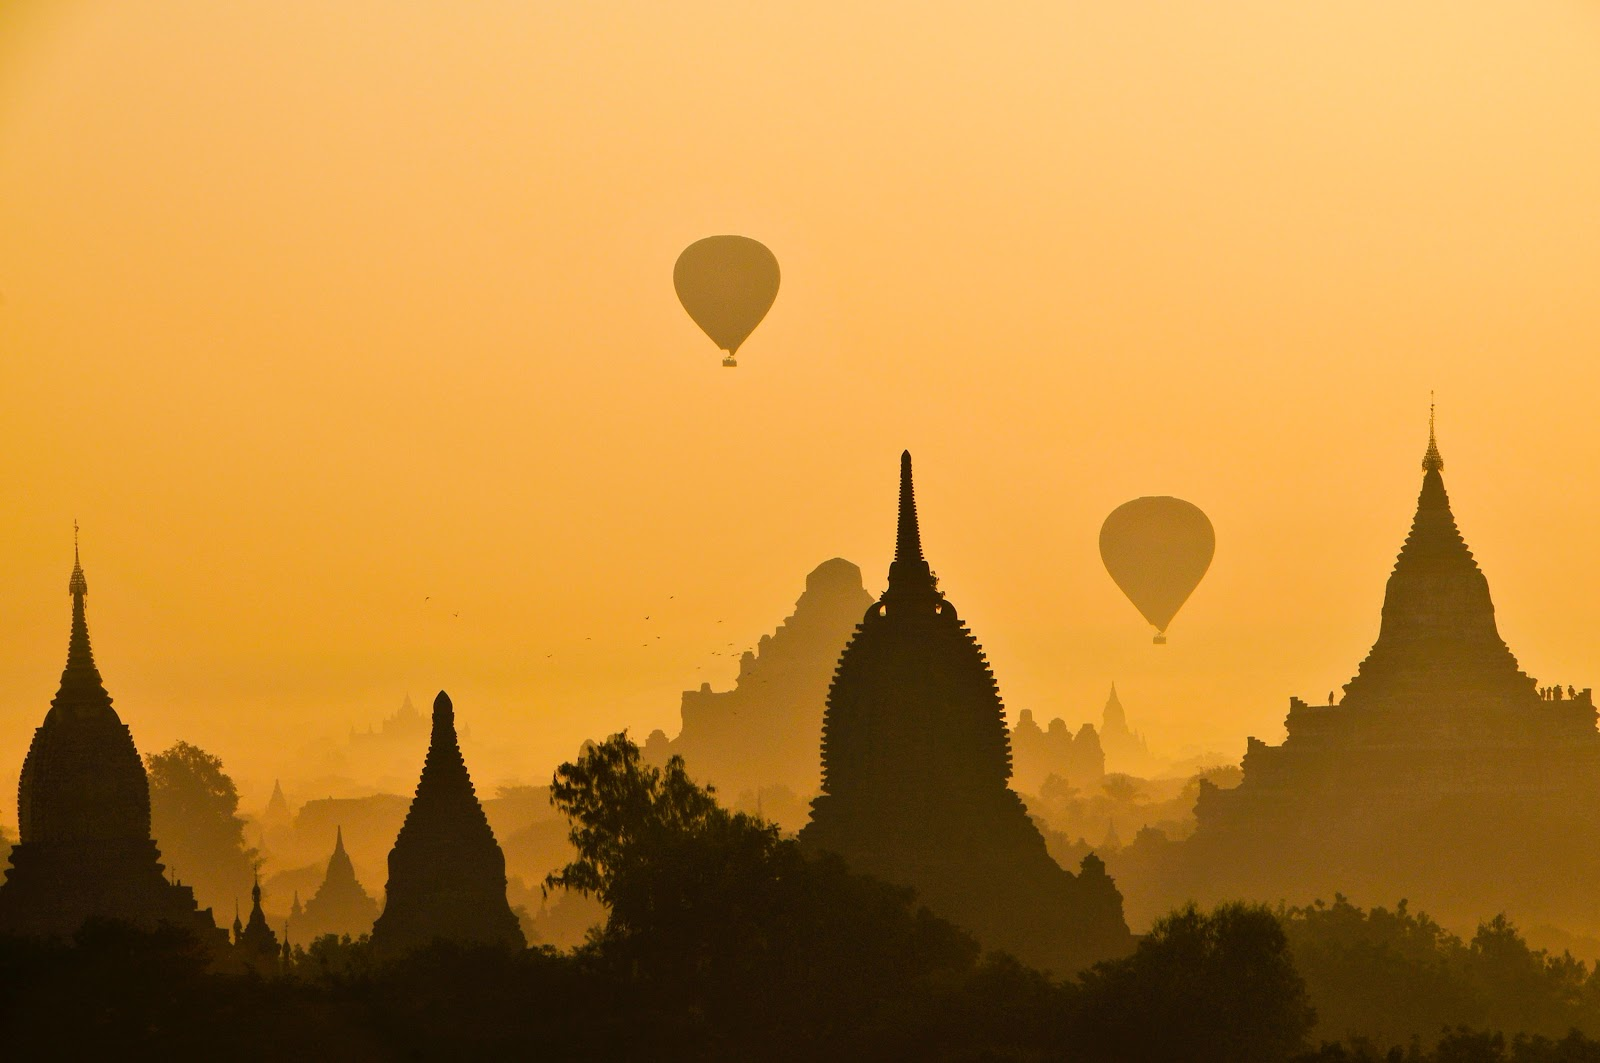 Balloon at sunrise, Thailand, Temples,